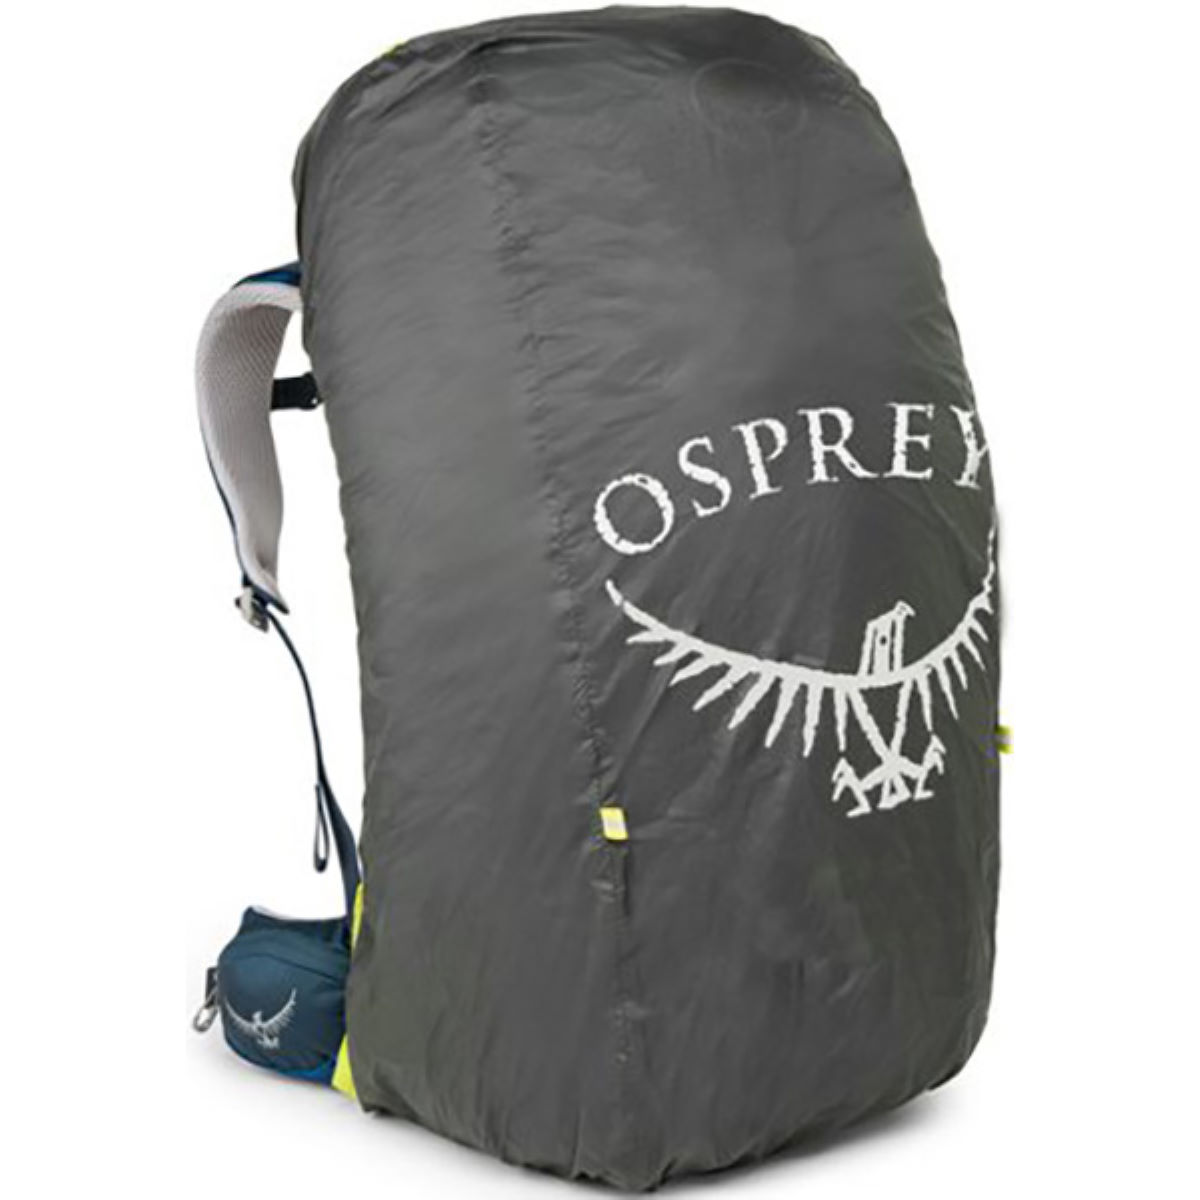 Osprey Osprey Ultralight Raincover - Extra Large   Rucksack Covers